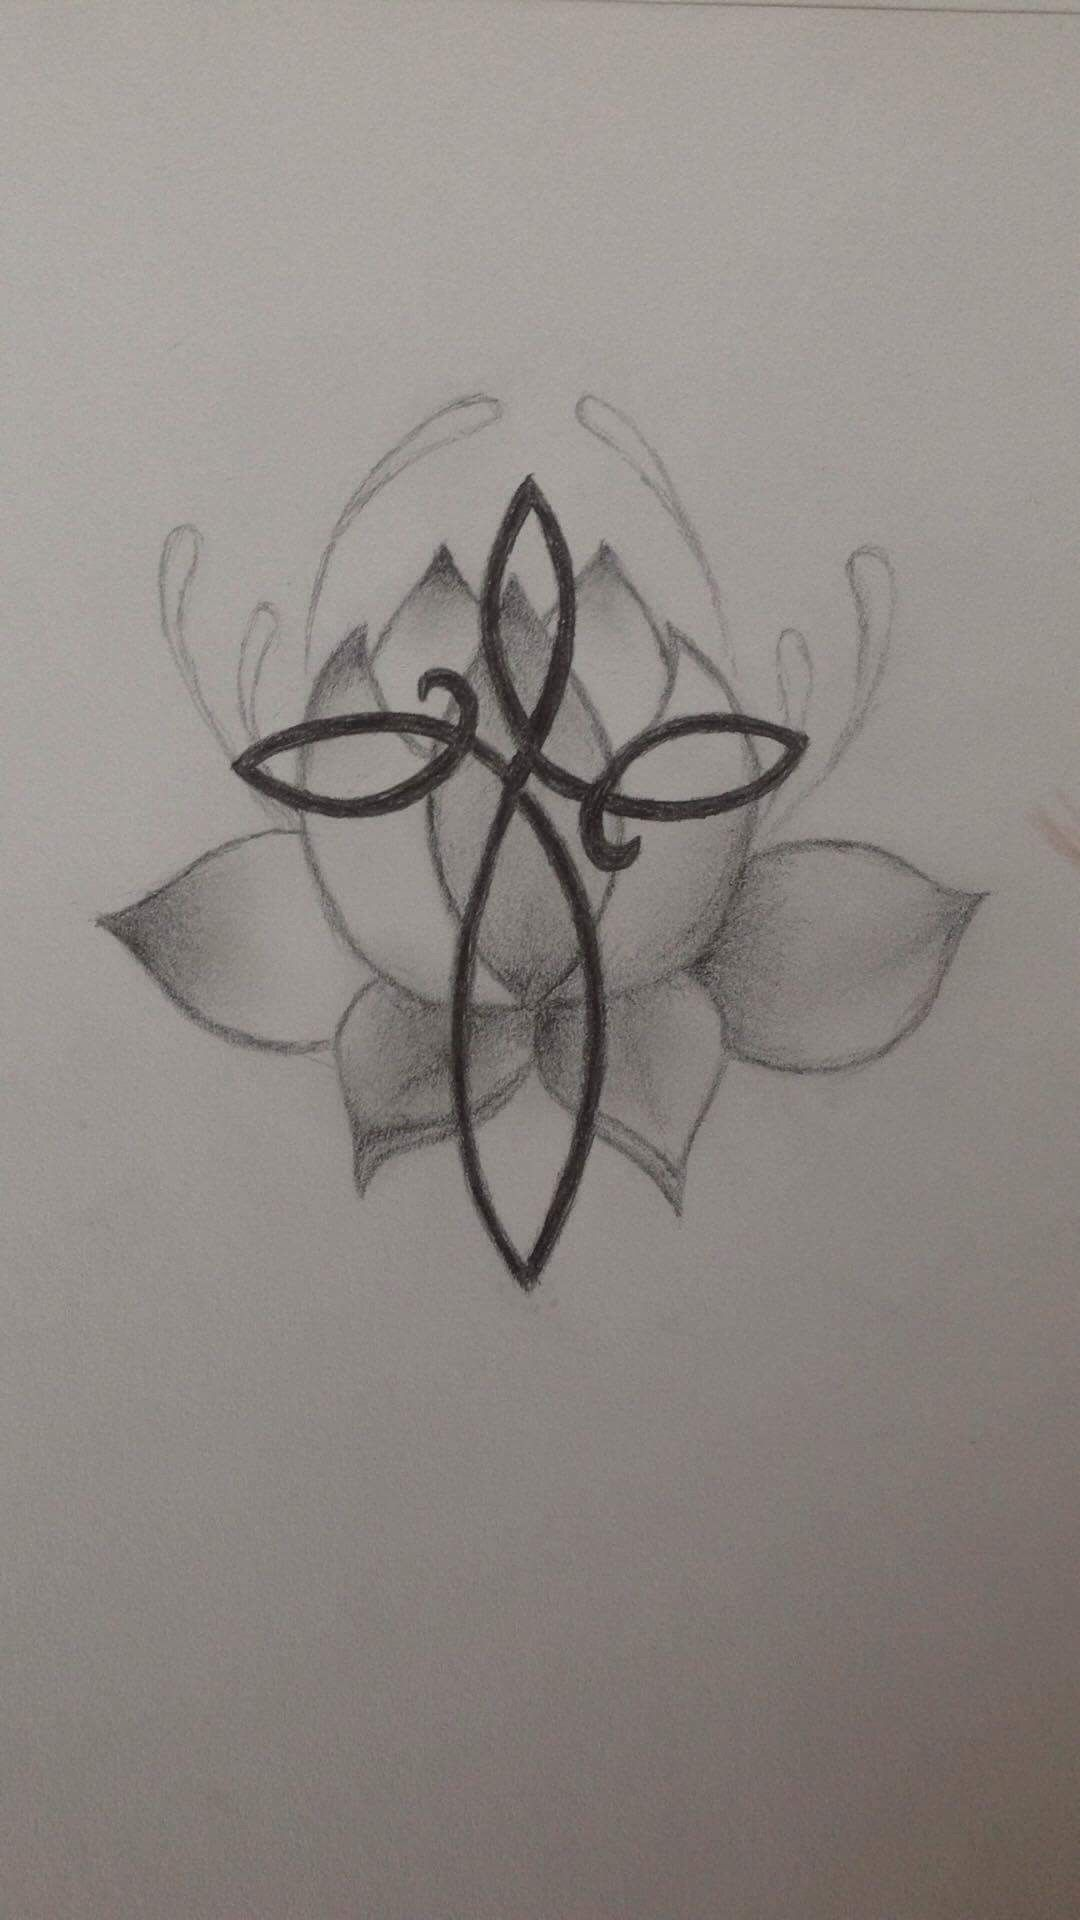 Infinity cross on lotus flower tattoo design for mom tattoos infinity cross on lotus flower tattoo design for mom izmirmasajfo